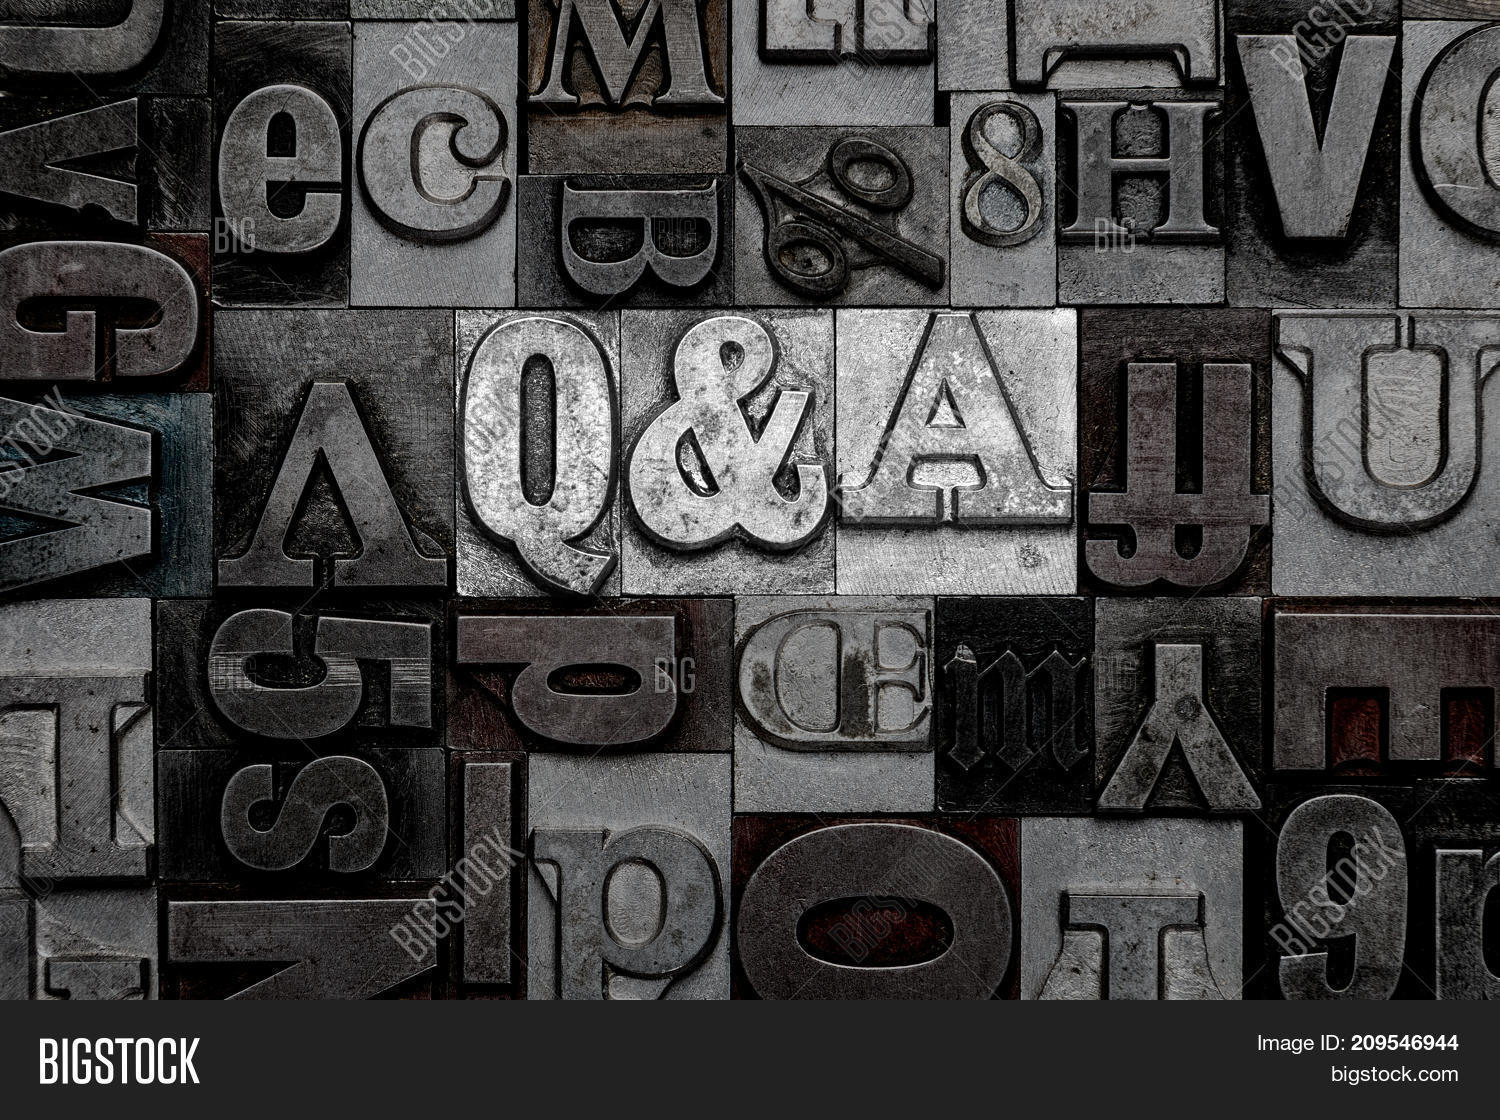 Old Metal Letters Delectable Term Q& Made Old Metal Letterpress Image & Photo  Bigstock Review